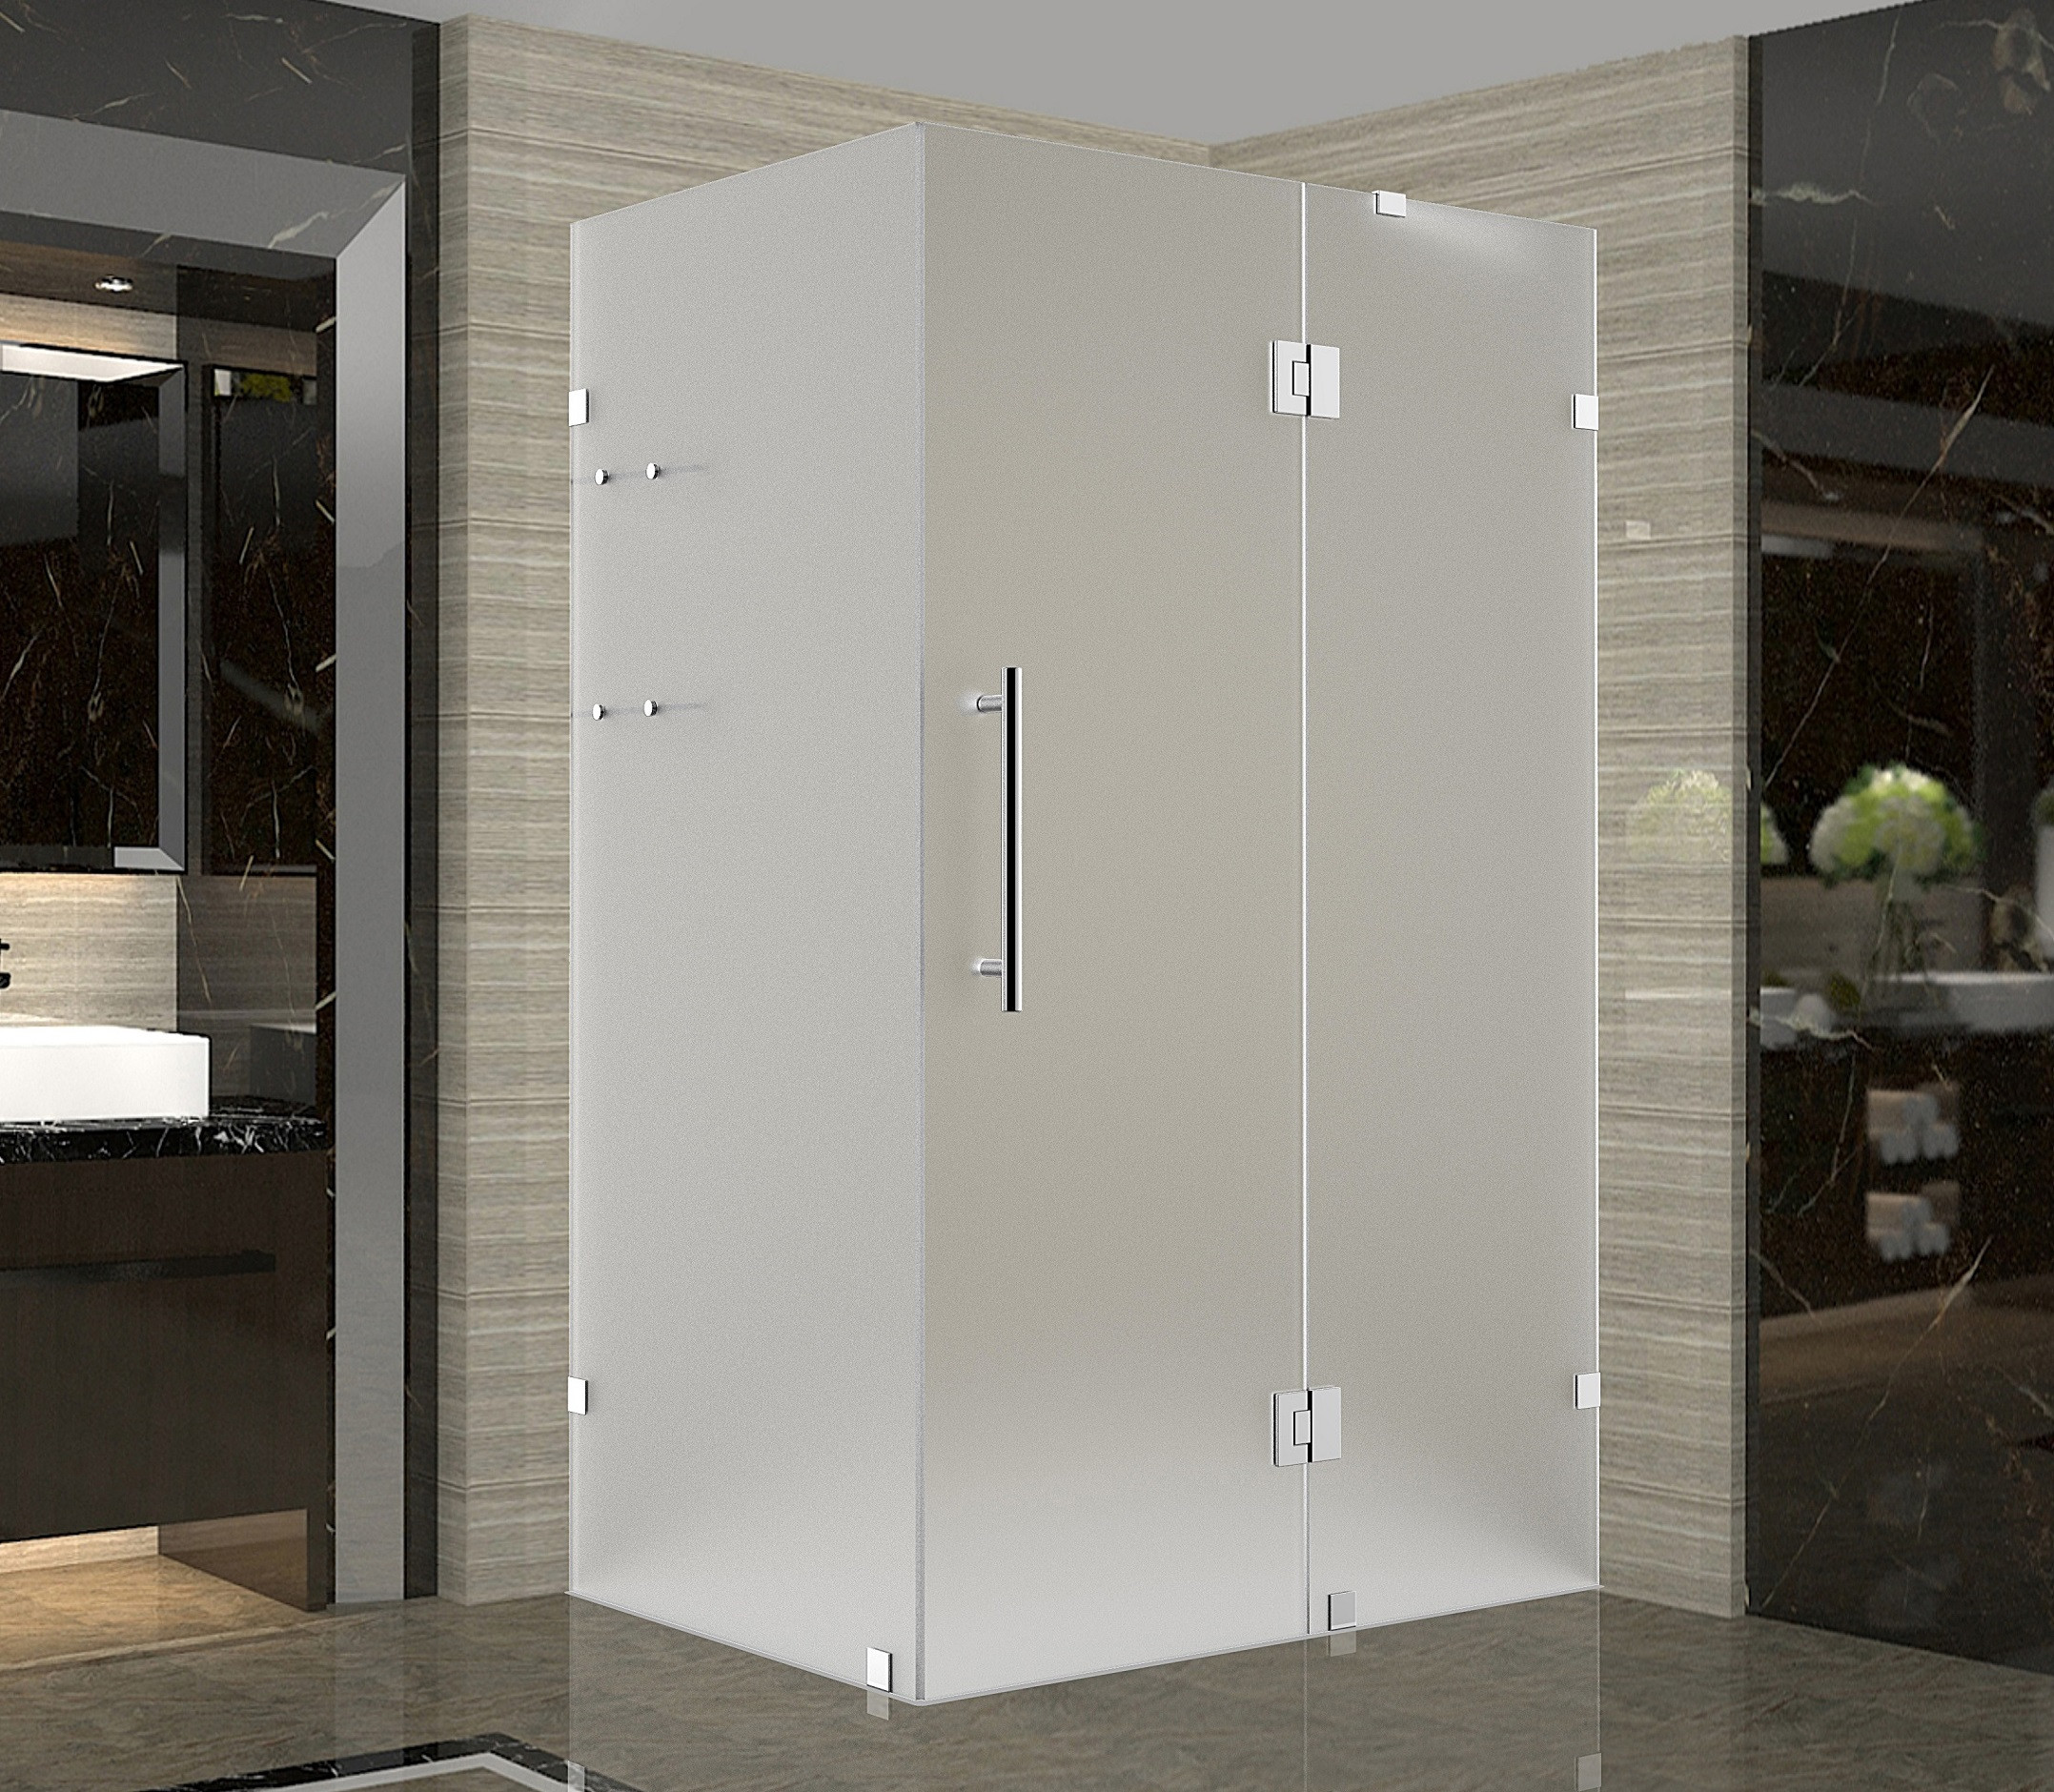 Aston Global SEN992F-CH-3332-10 Chrome Completely Frameless Frosted Shower Enclosure with Shelves